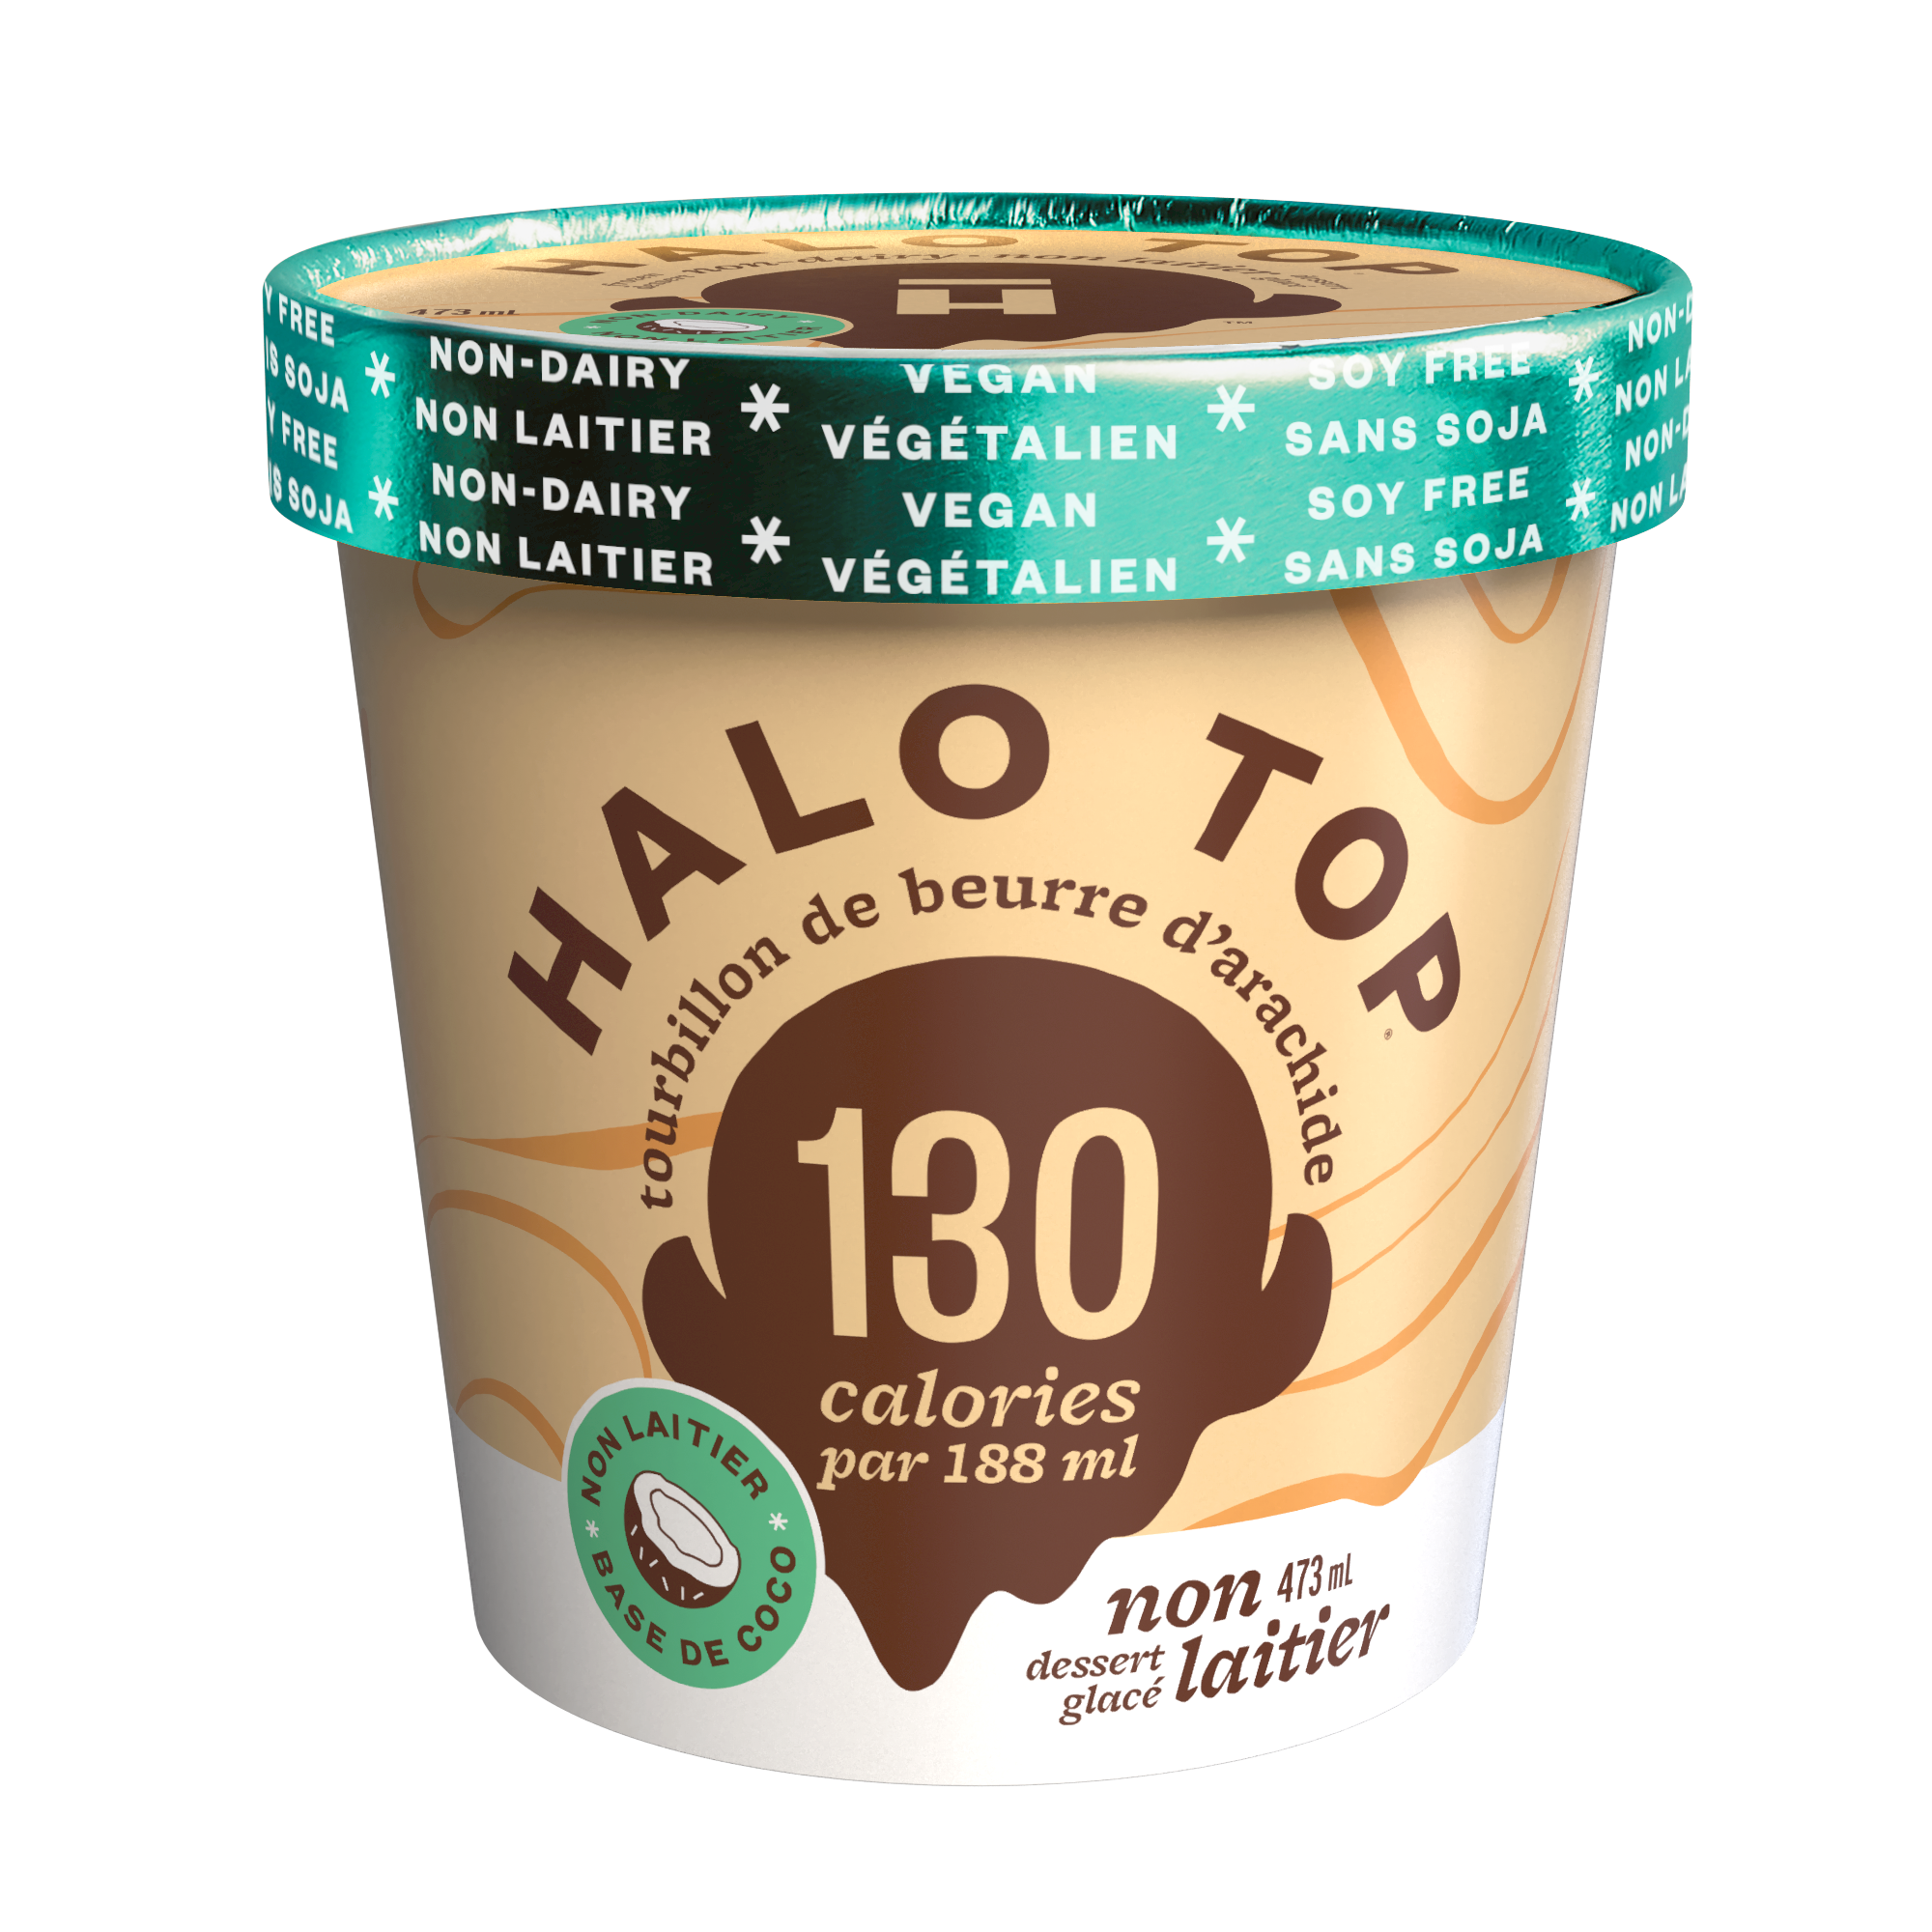 HT19_CA-PackShot-PeanutButterSwirl-Front_FR.png